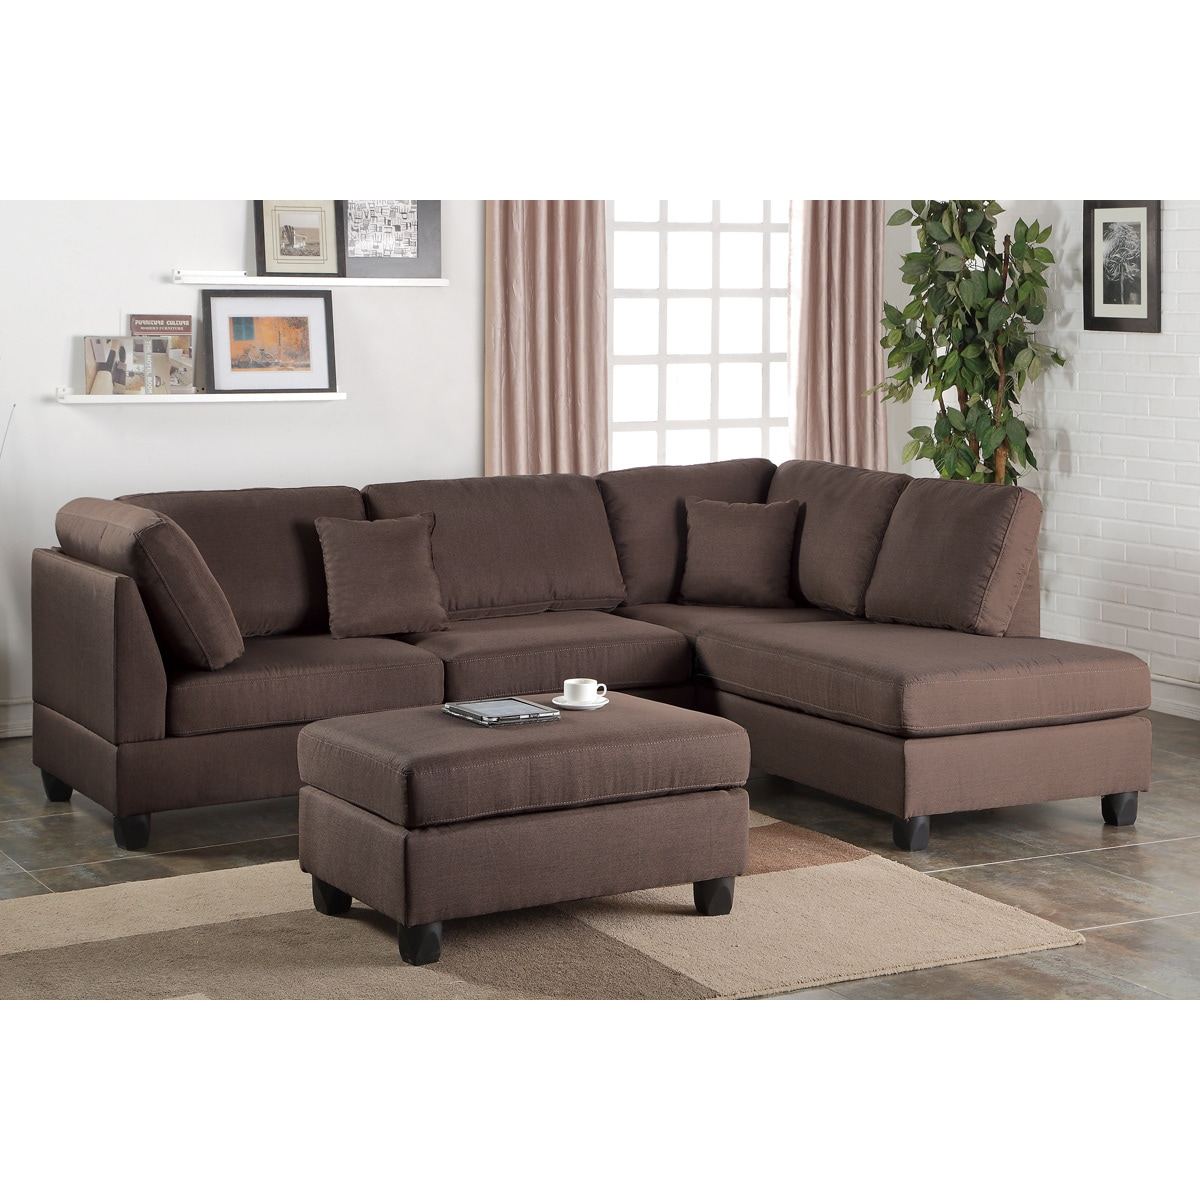 sectional wayfair galiana reviews furniture pdx bobkona poundex